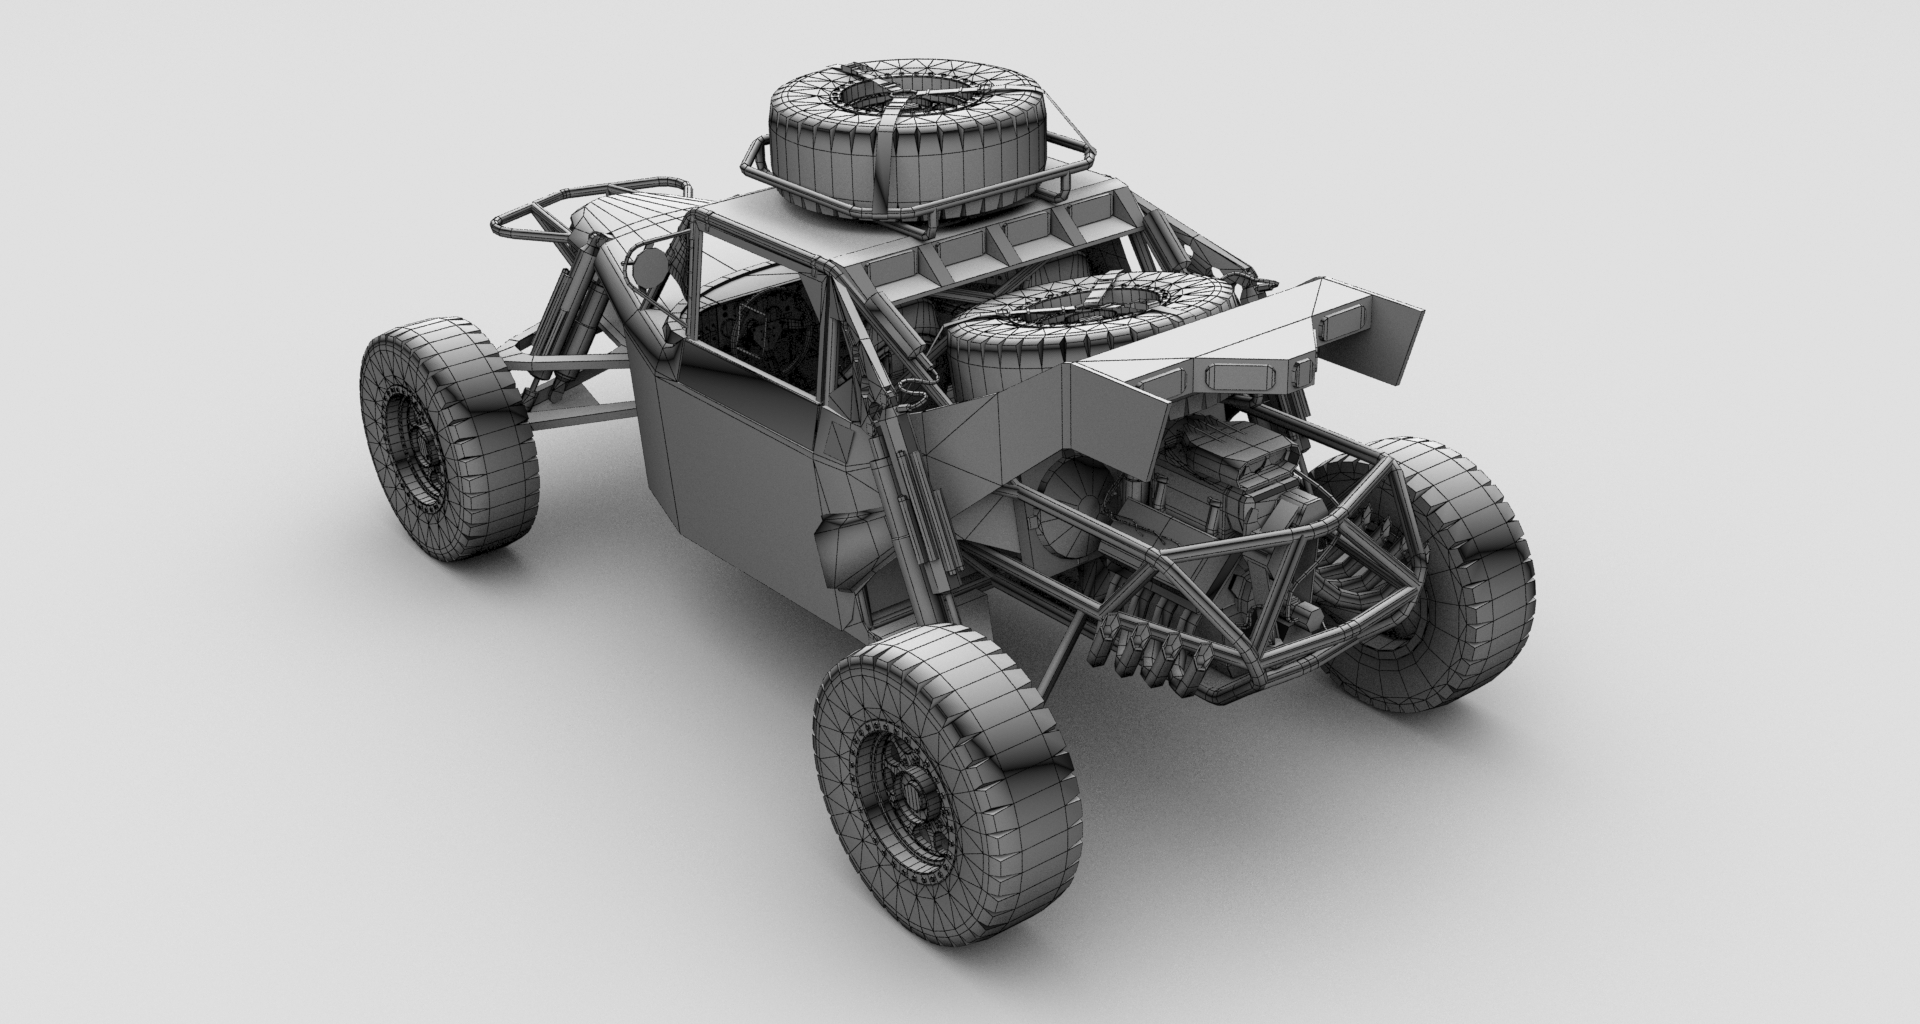 2010-05_The Crew_F.Beudin_Buggy_08